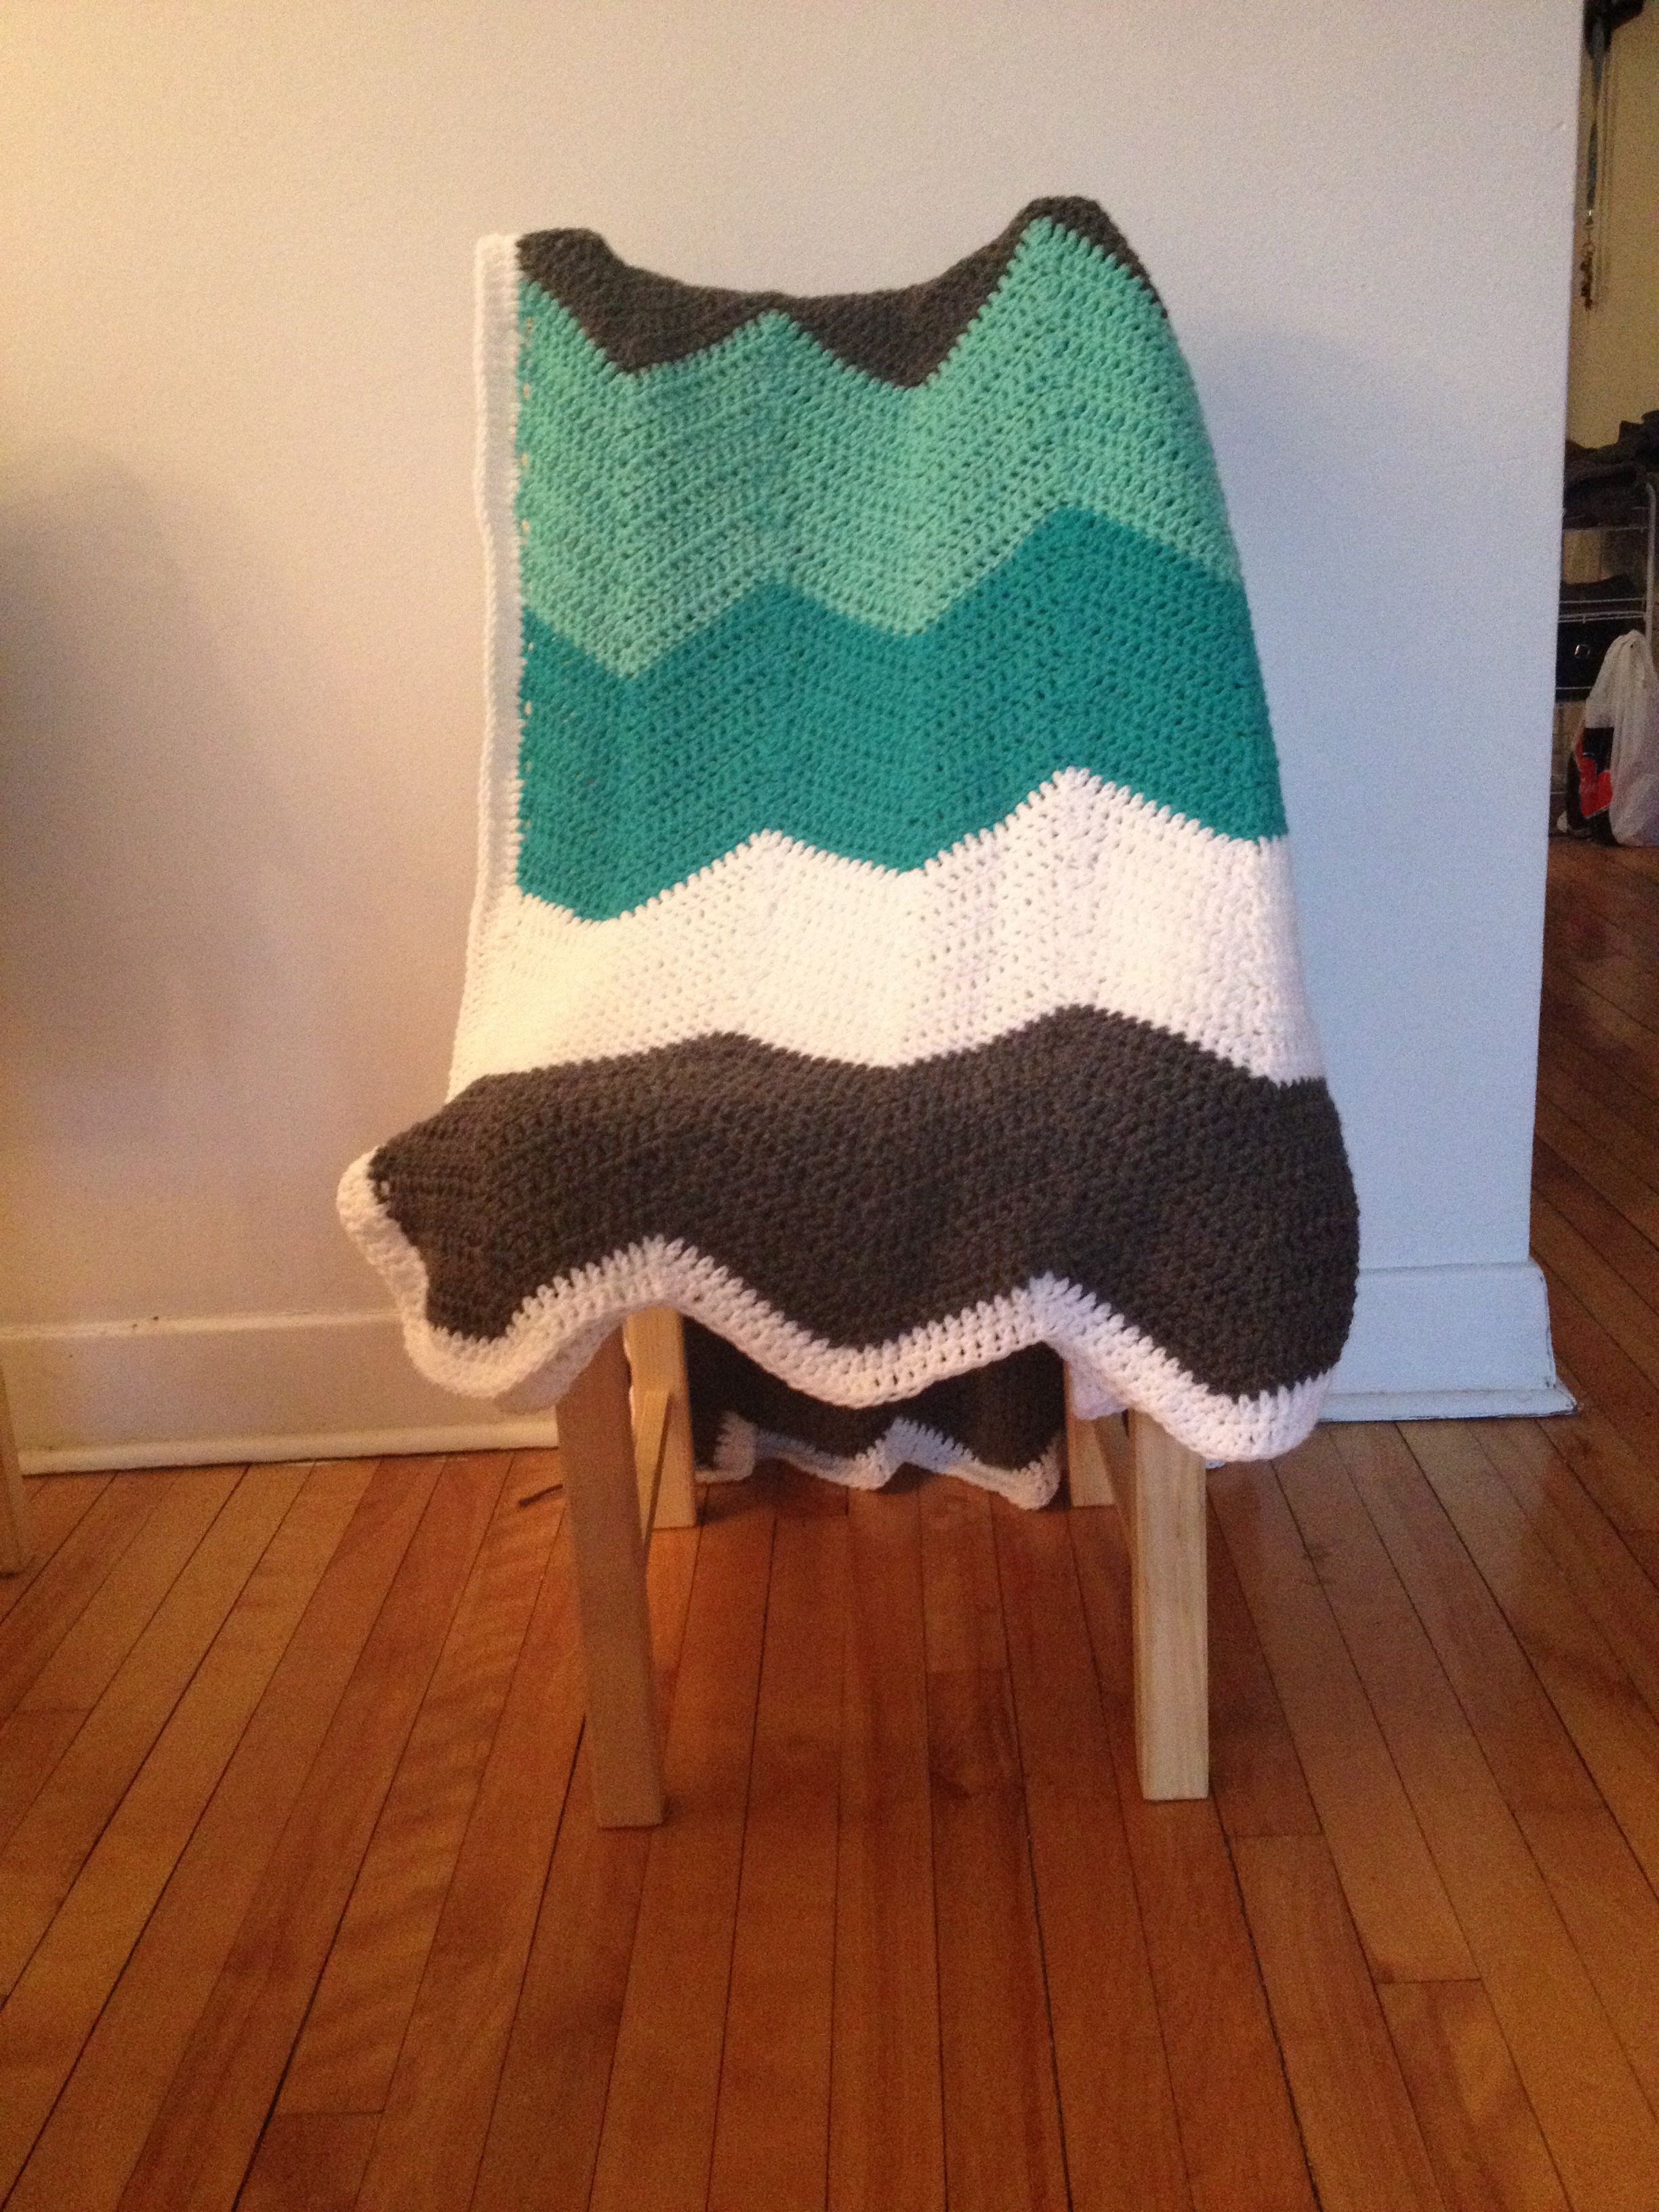 Crocheted myself a chevron patterned blanket! Blue, mint blue, grey, and white :)